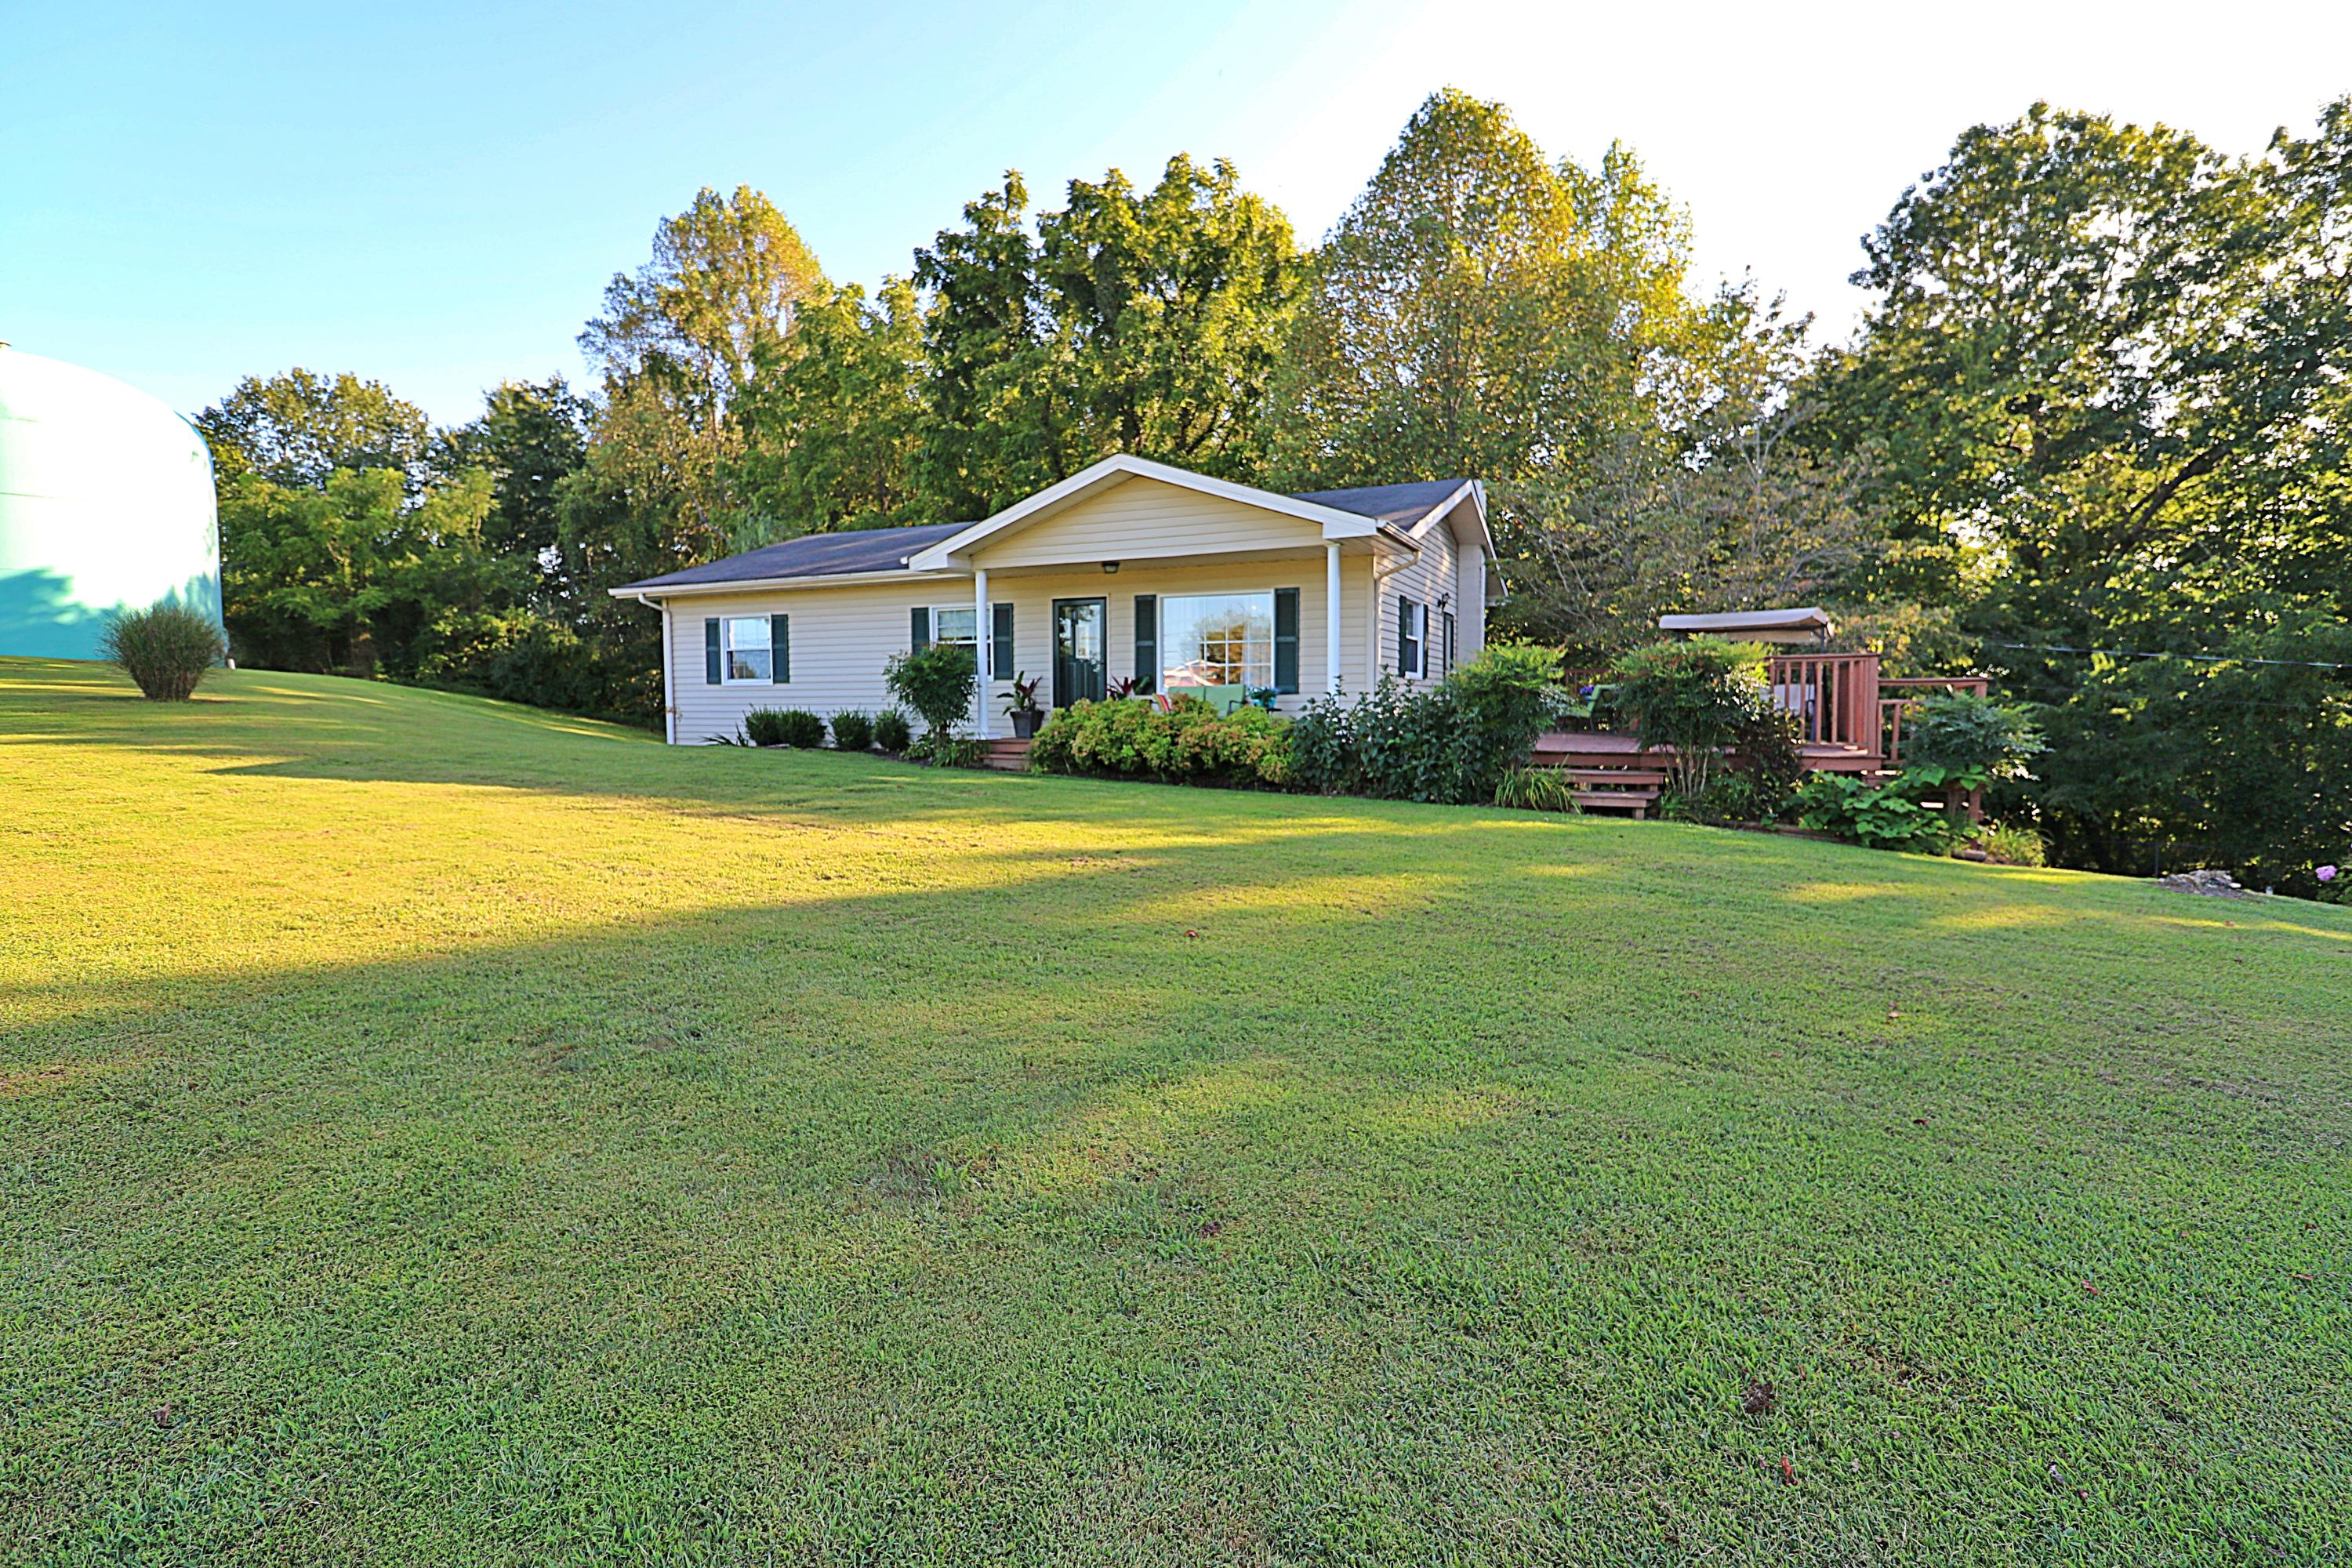 364 Cherry Fork Rd, Helenwood, Tennessee 37755, 3 Bedrooms Bedrooms, ,2 BathroomsBathrooms,Single Family,For Sale,Cherry Fork,1093636